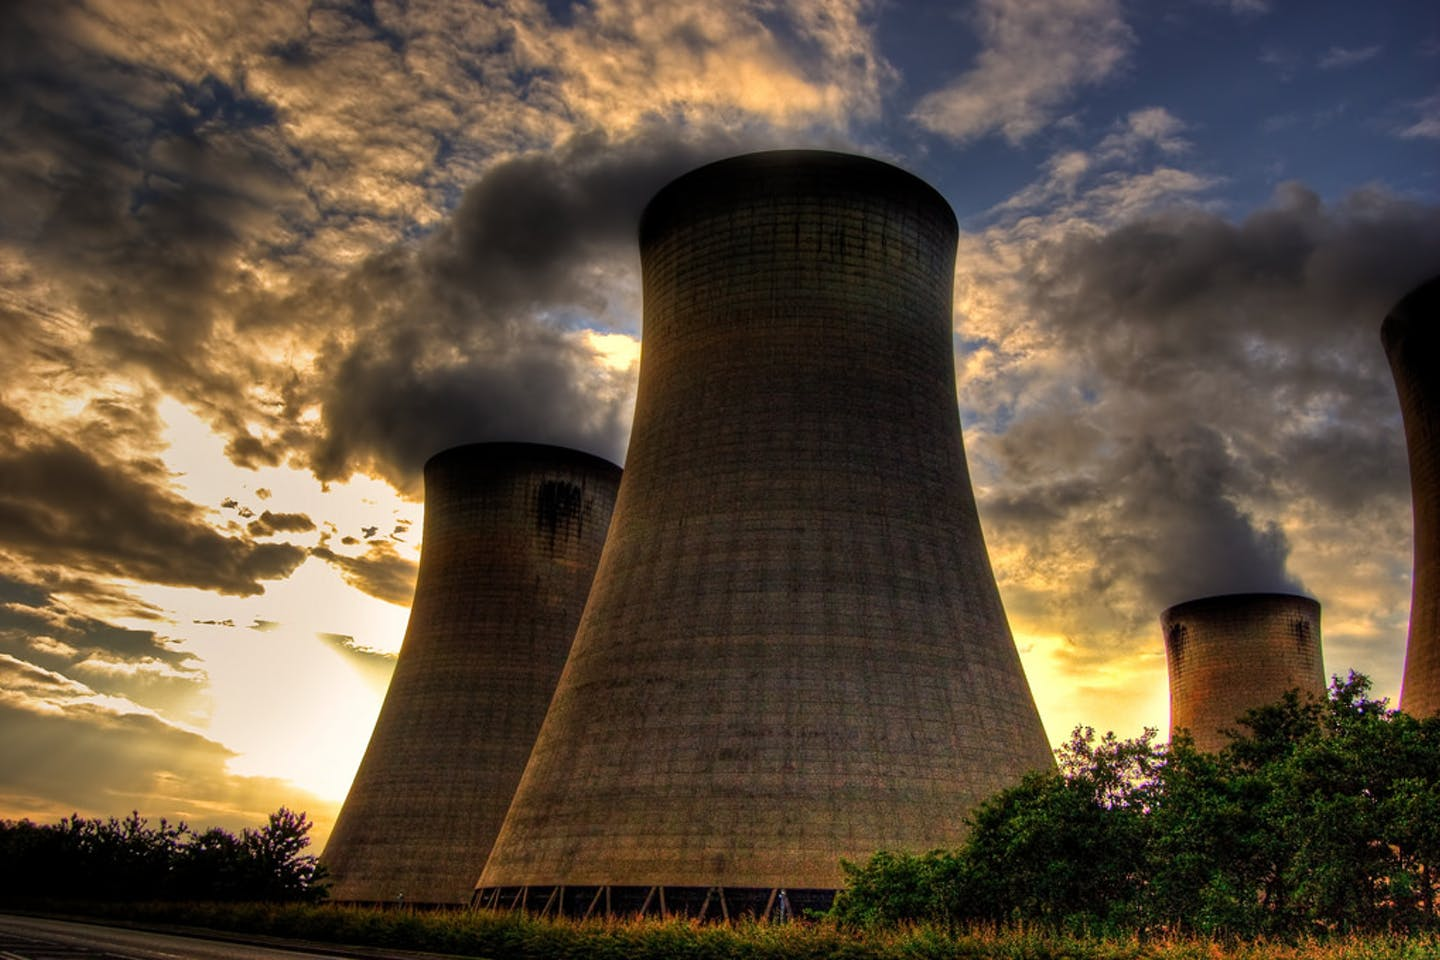 The four eastern cooling towers at the Drax coal-fired power station in North Yorkshire.